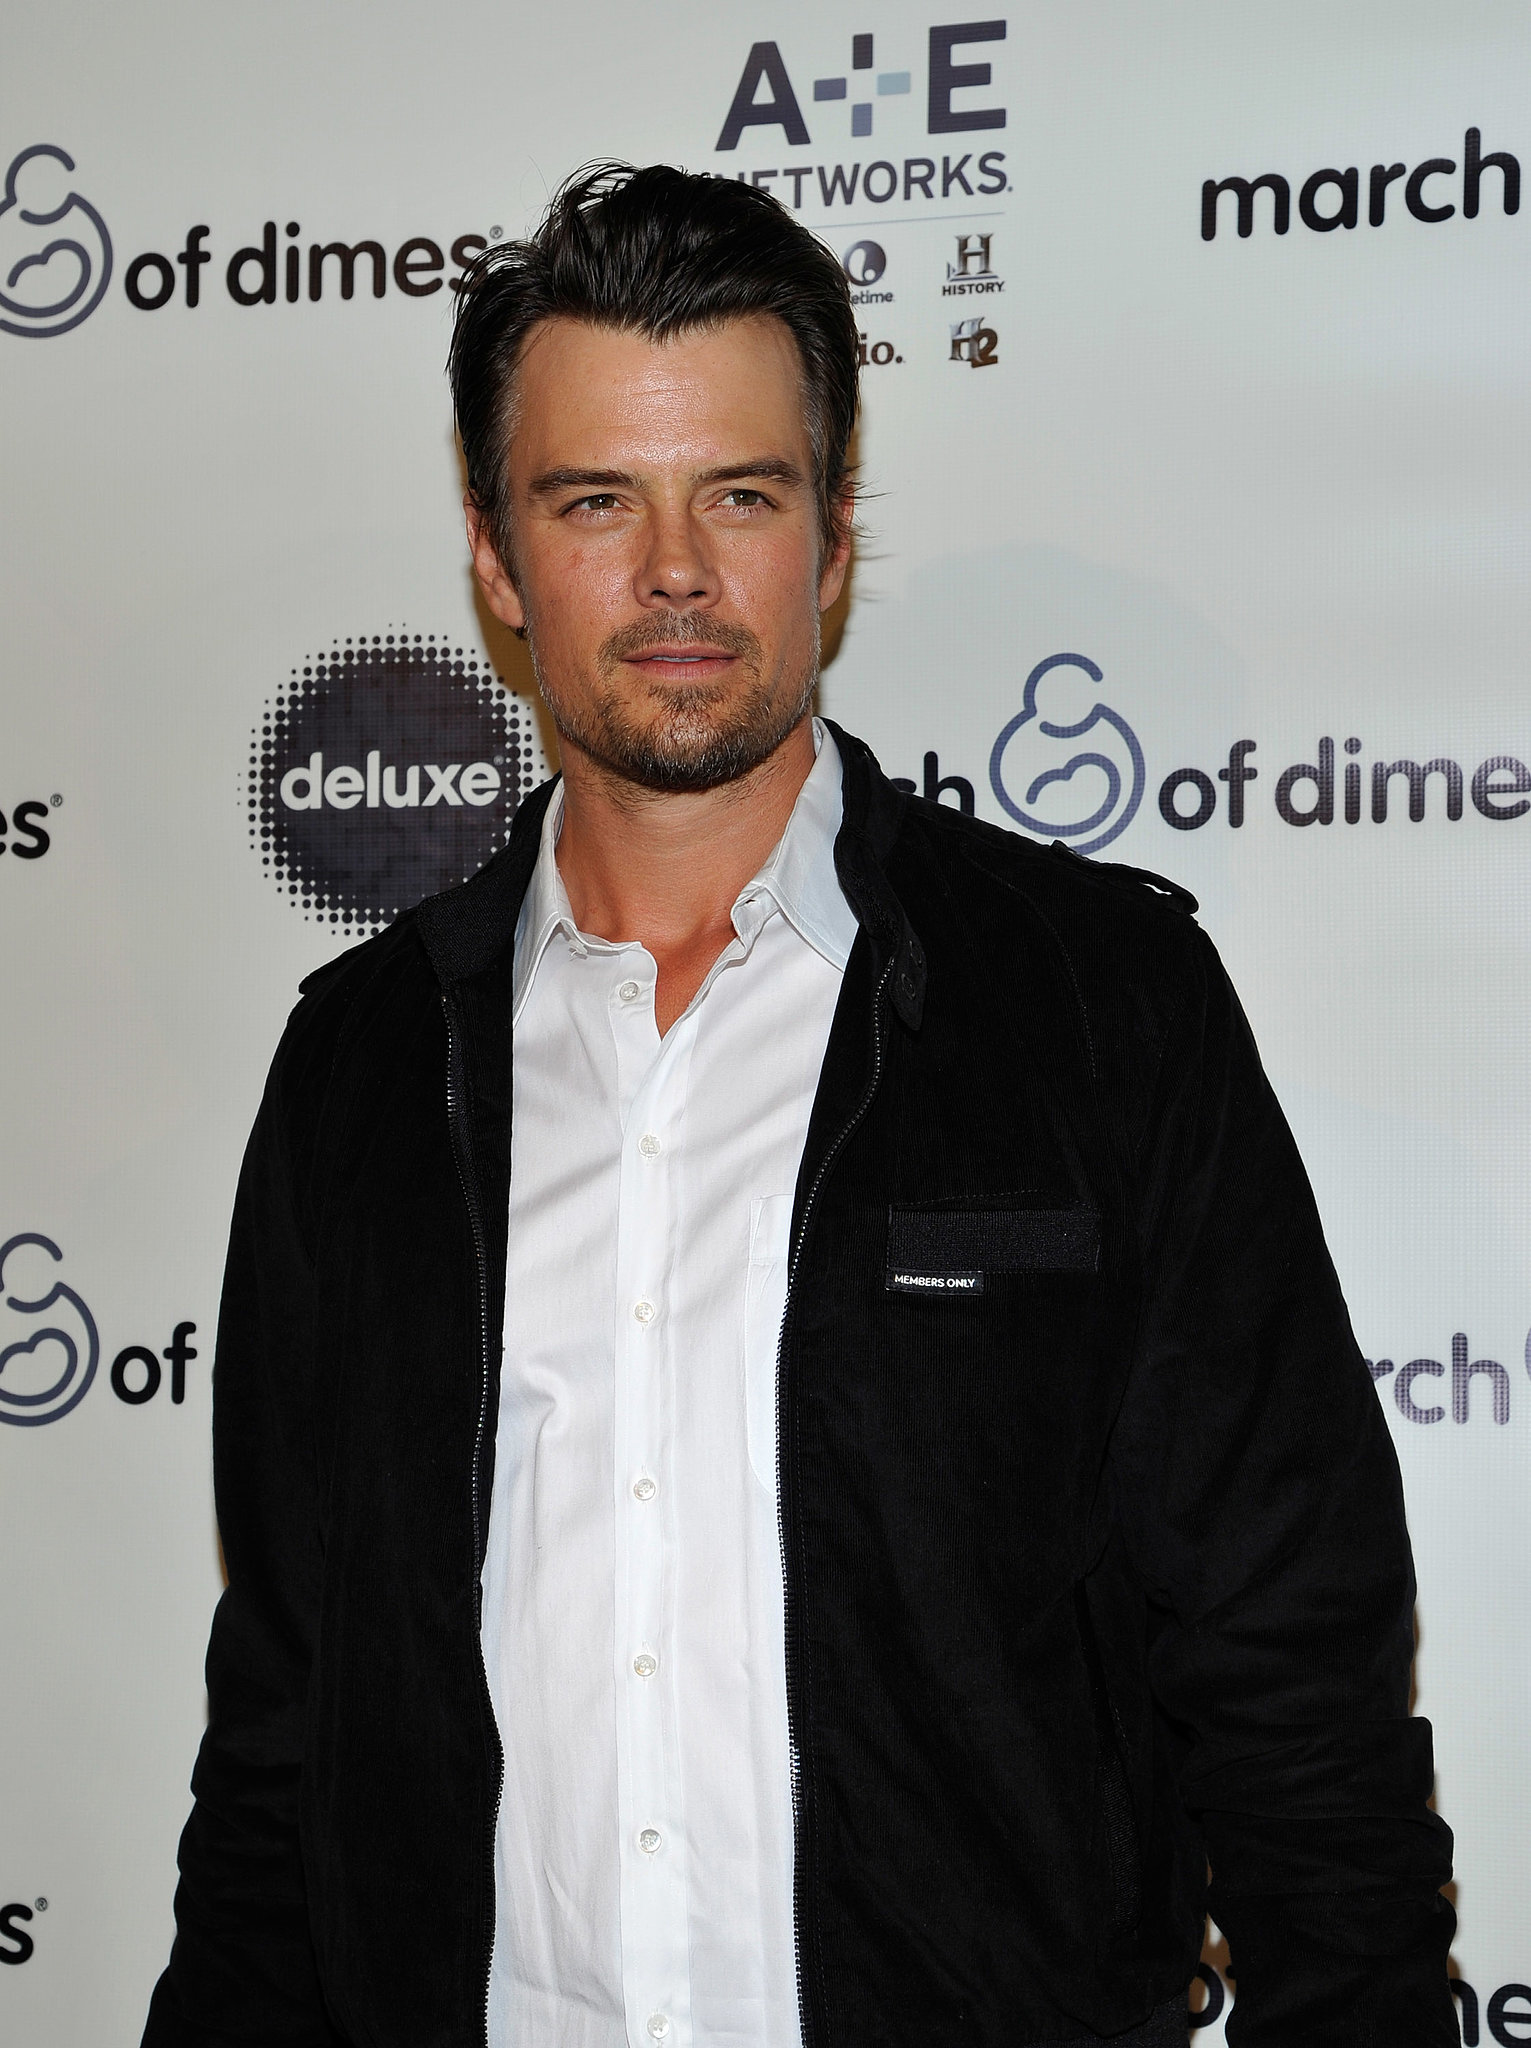 New dad Josh Duhamel made an appearance at the March of Dimes luncheon.